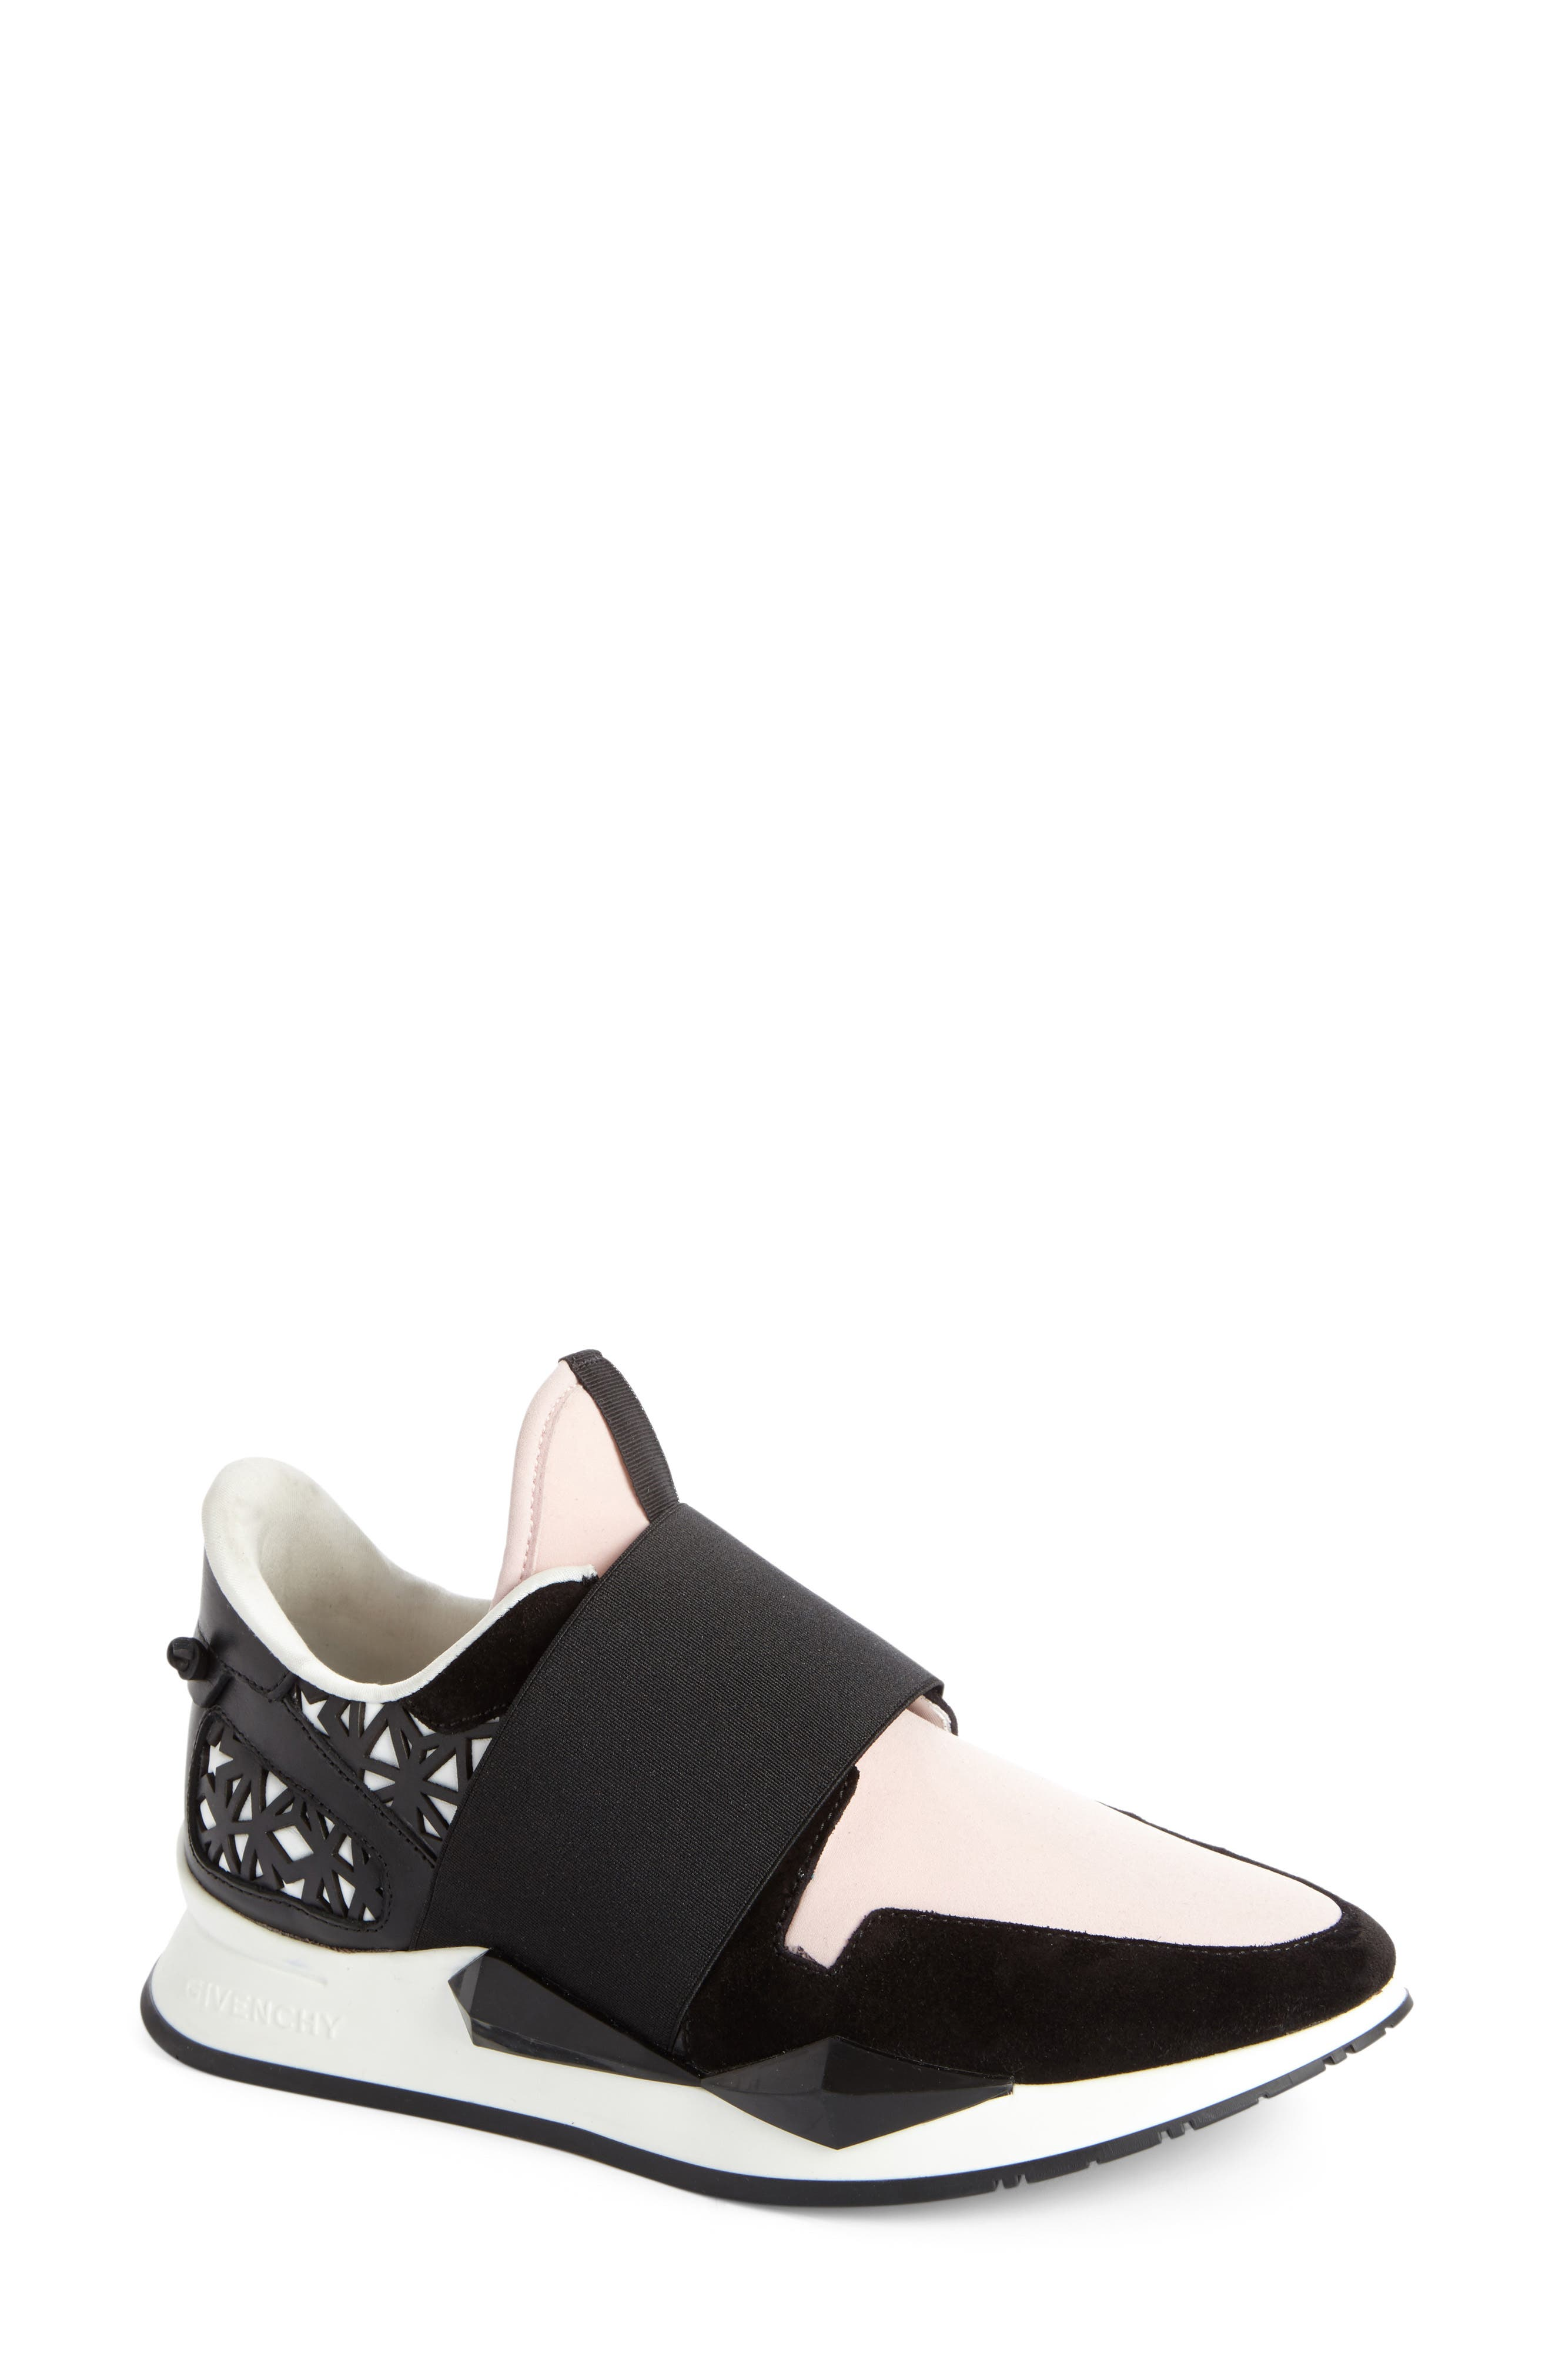 GIVENCHY Slip-On Sneaker